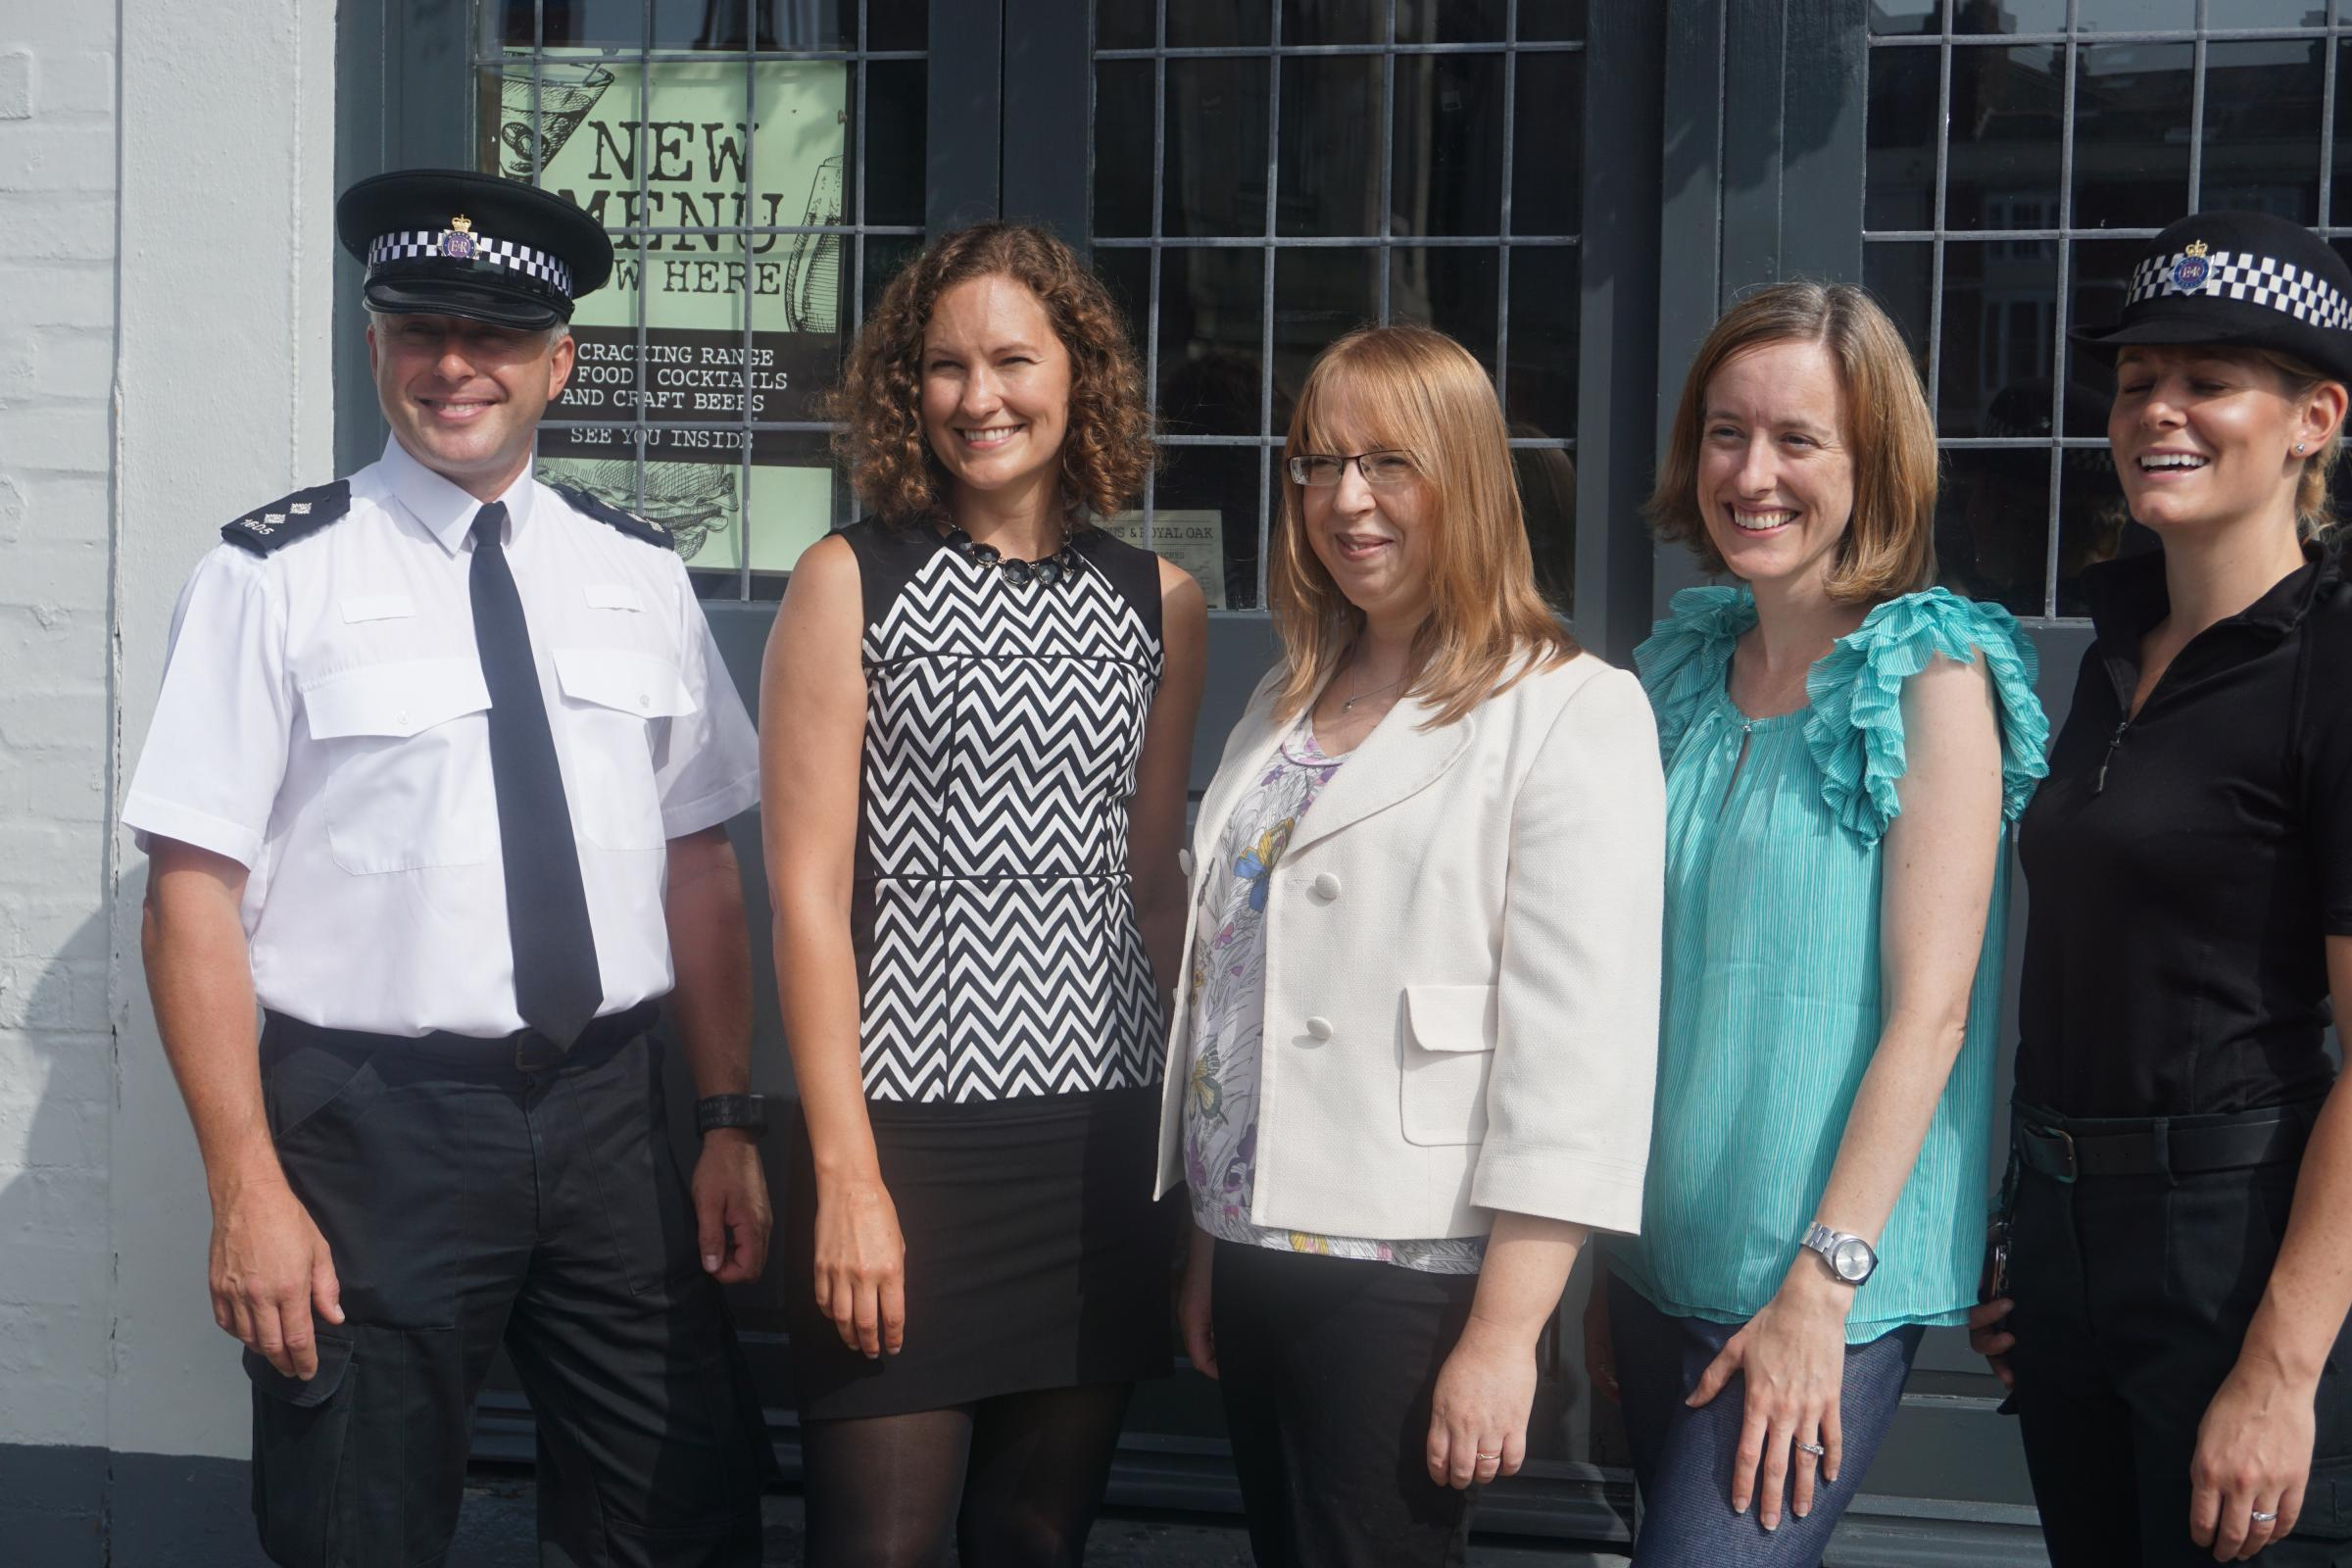 Insp Pete Browning, Dr Katharine Boyd, Dr Hannah Farrimond, Dreoilin Fleischer and PC Holly Damen